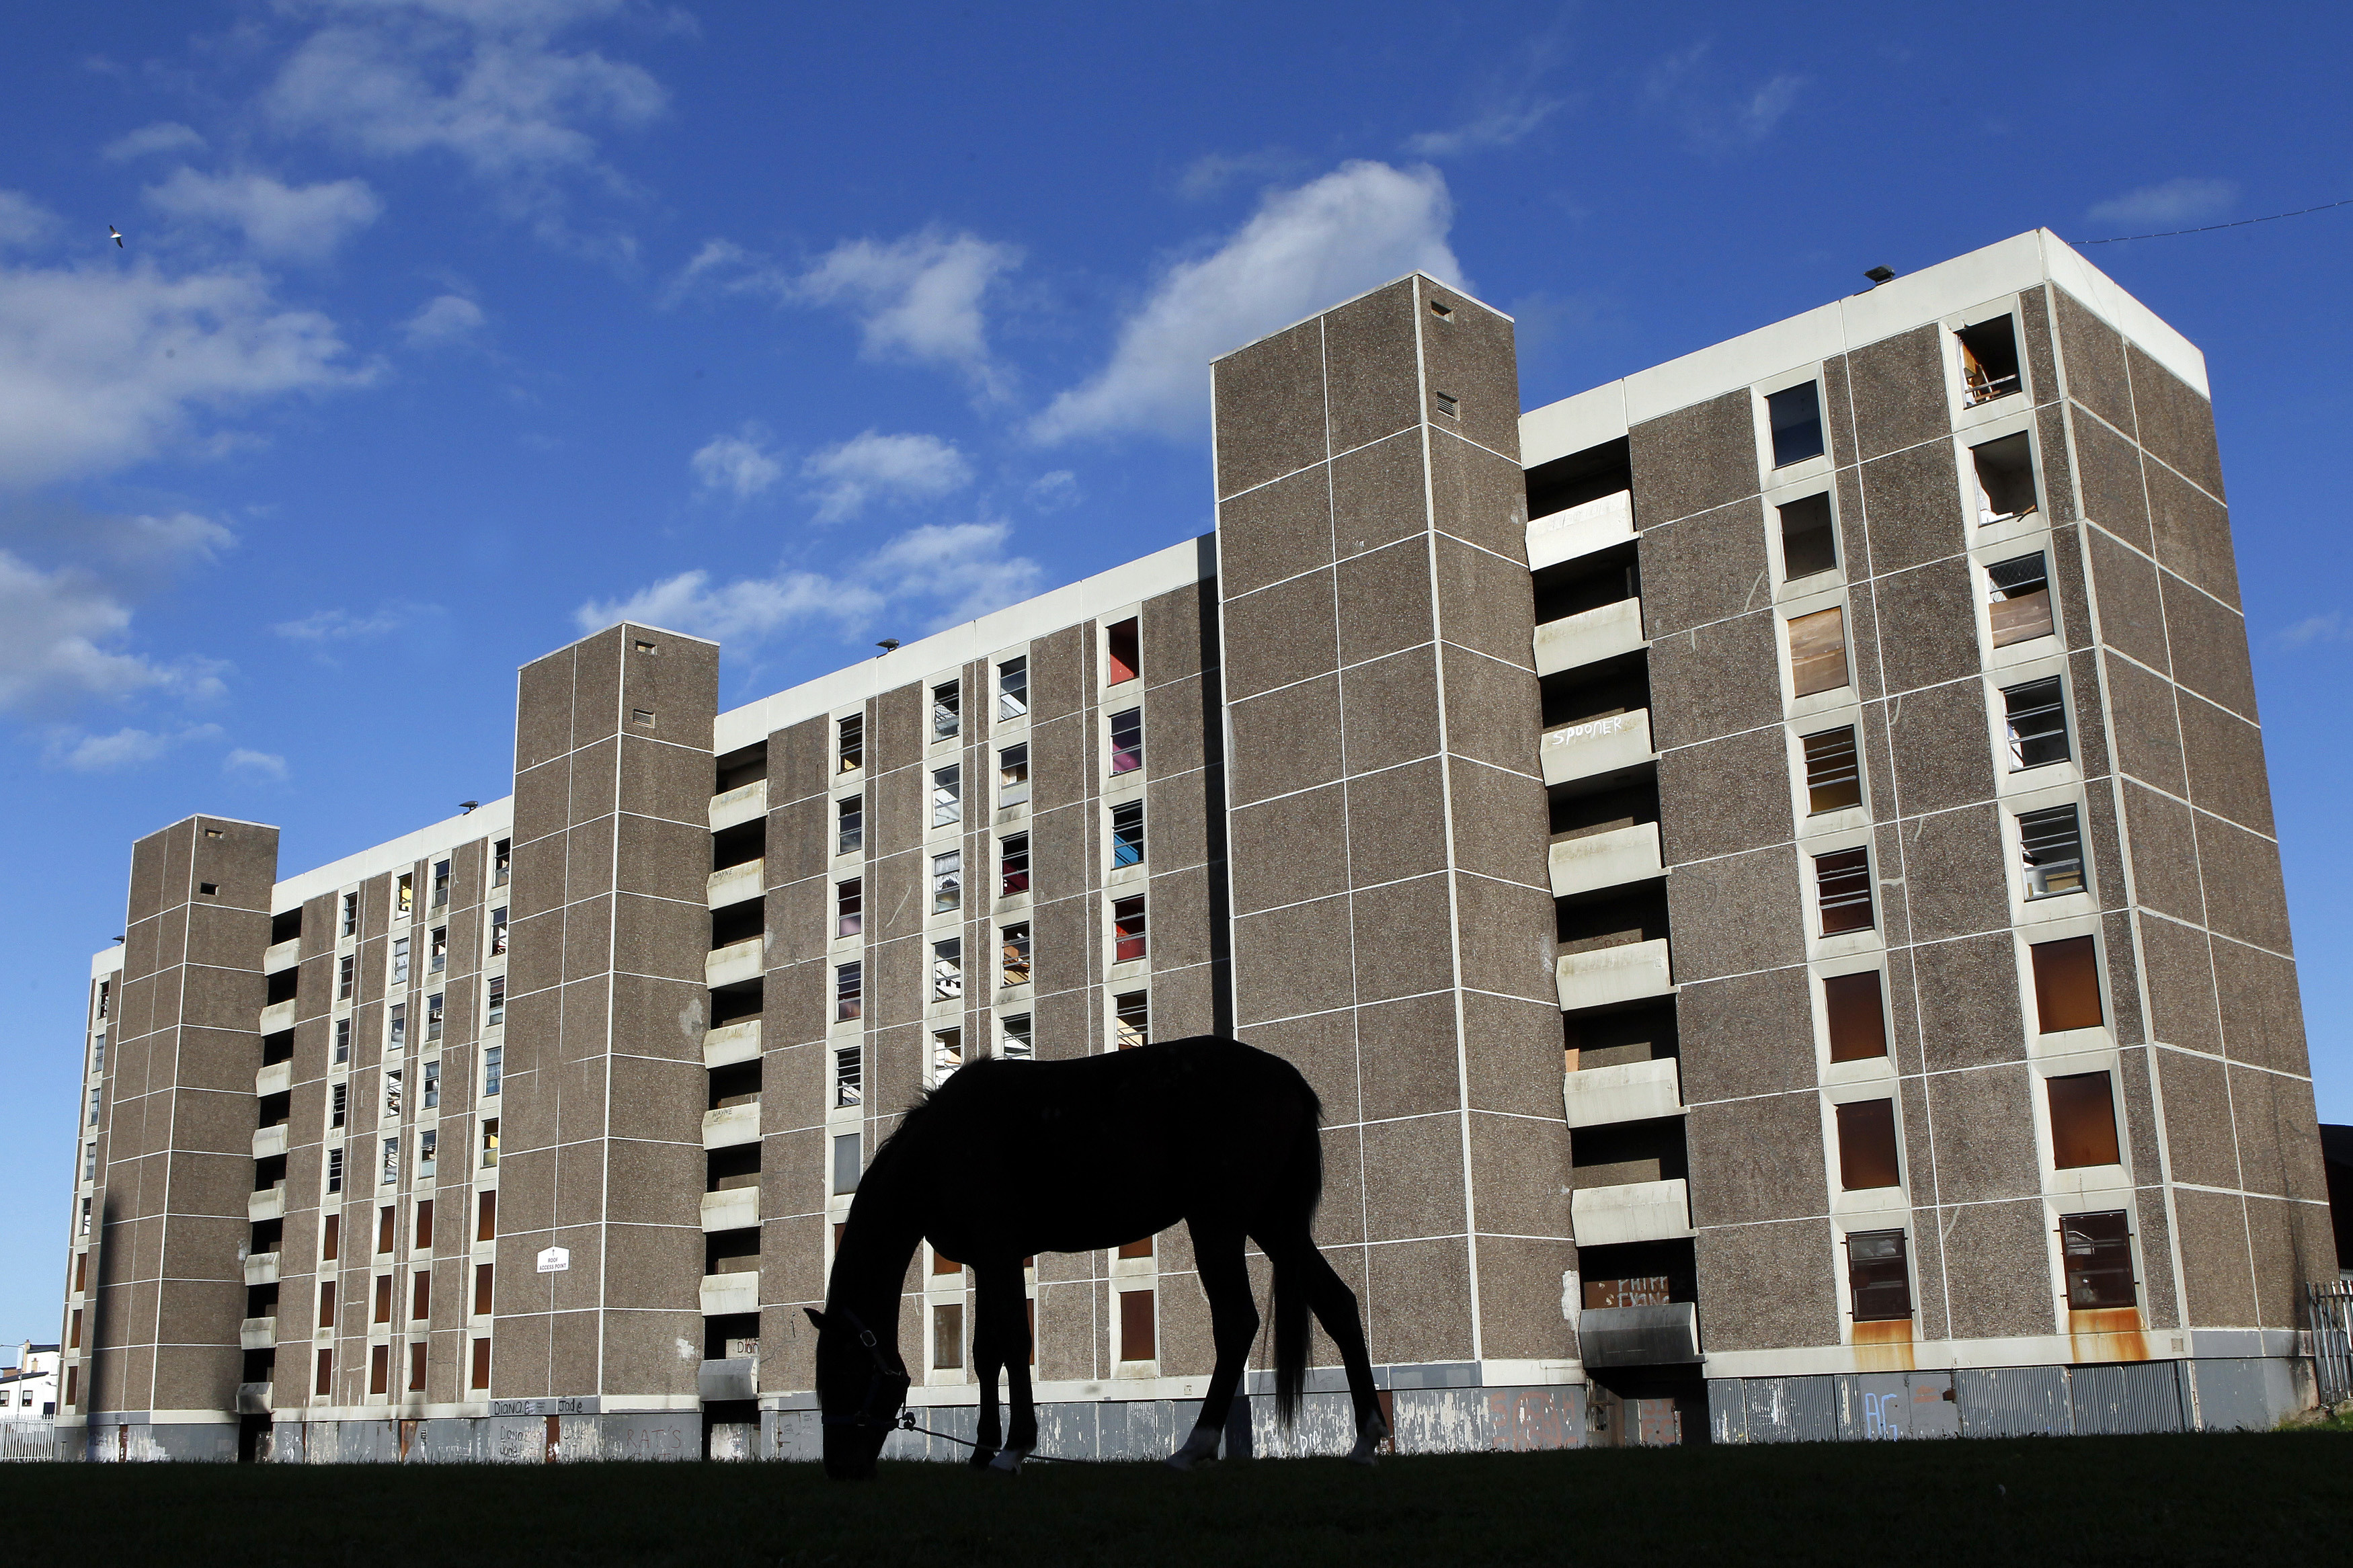 A horse grazes in front of derelict flats in the Ballymun area of North Dublin, October 1, 2010. Ireland's brief economic upturn showed further signs of petering out on Friday, with weak manufacturing and retail sales data giving under-fire Prime Minister Brian Cowen little comfort ahead of yet another round of cuts. REUTERS/Cathal McNaughton (IRELAND - Tags: POLITICS BUSINESS SOCIETY IMAGES OF THE DAY) - GM1E6A204CZ01